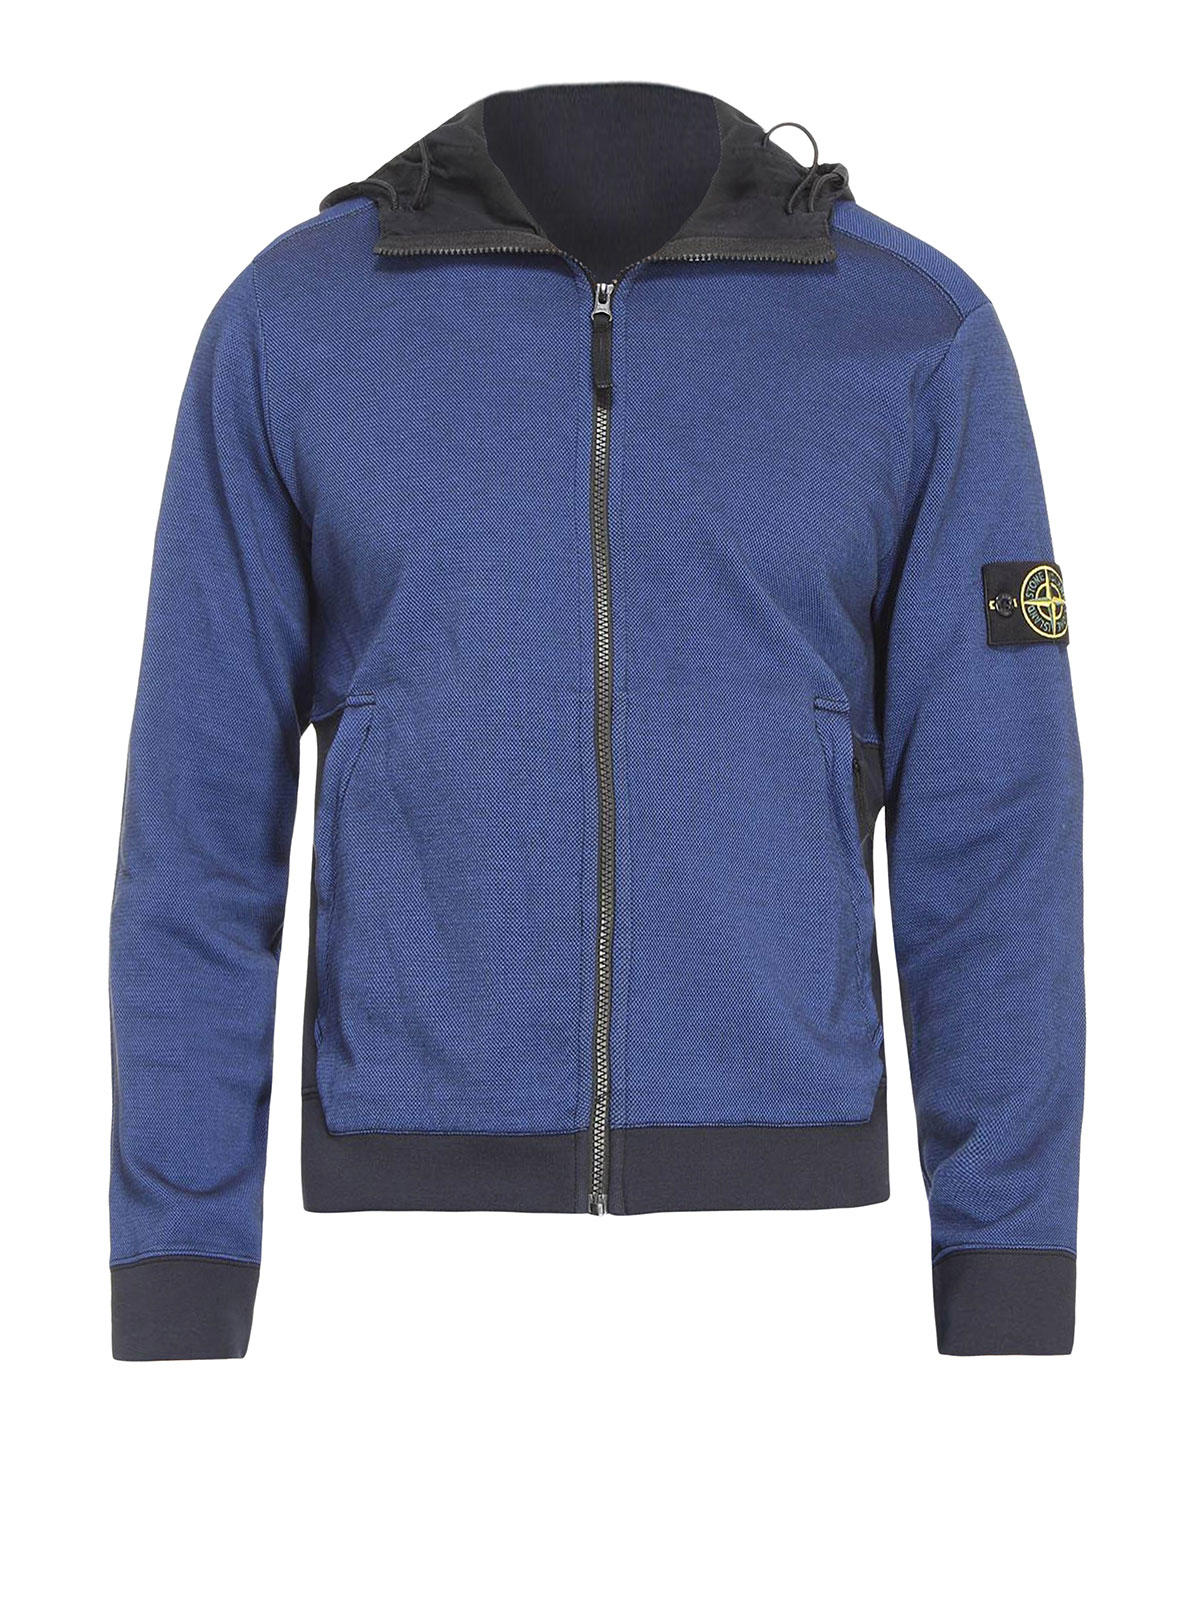 two tone sweatshirt by stone island sweatshirts. Black Bedroom Furniture Sets. Home Design Ideas